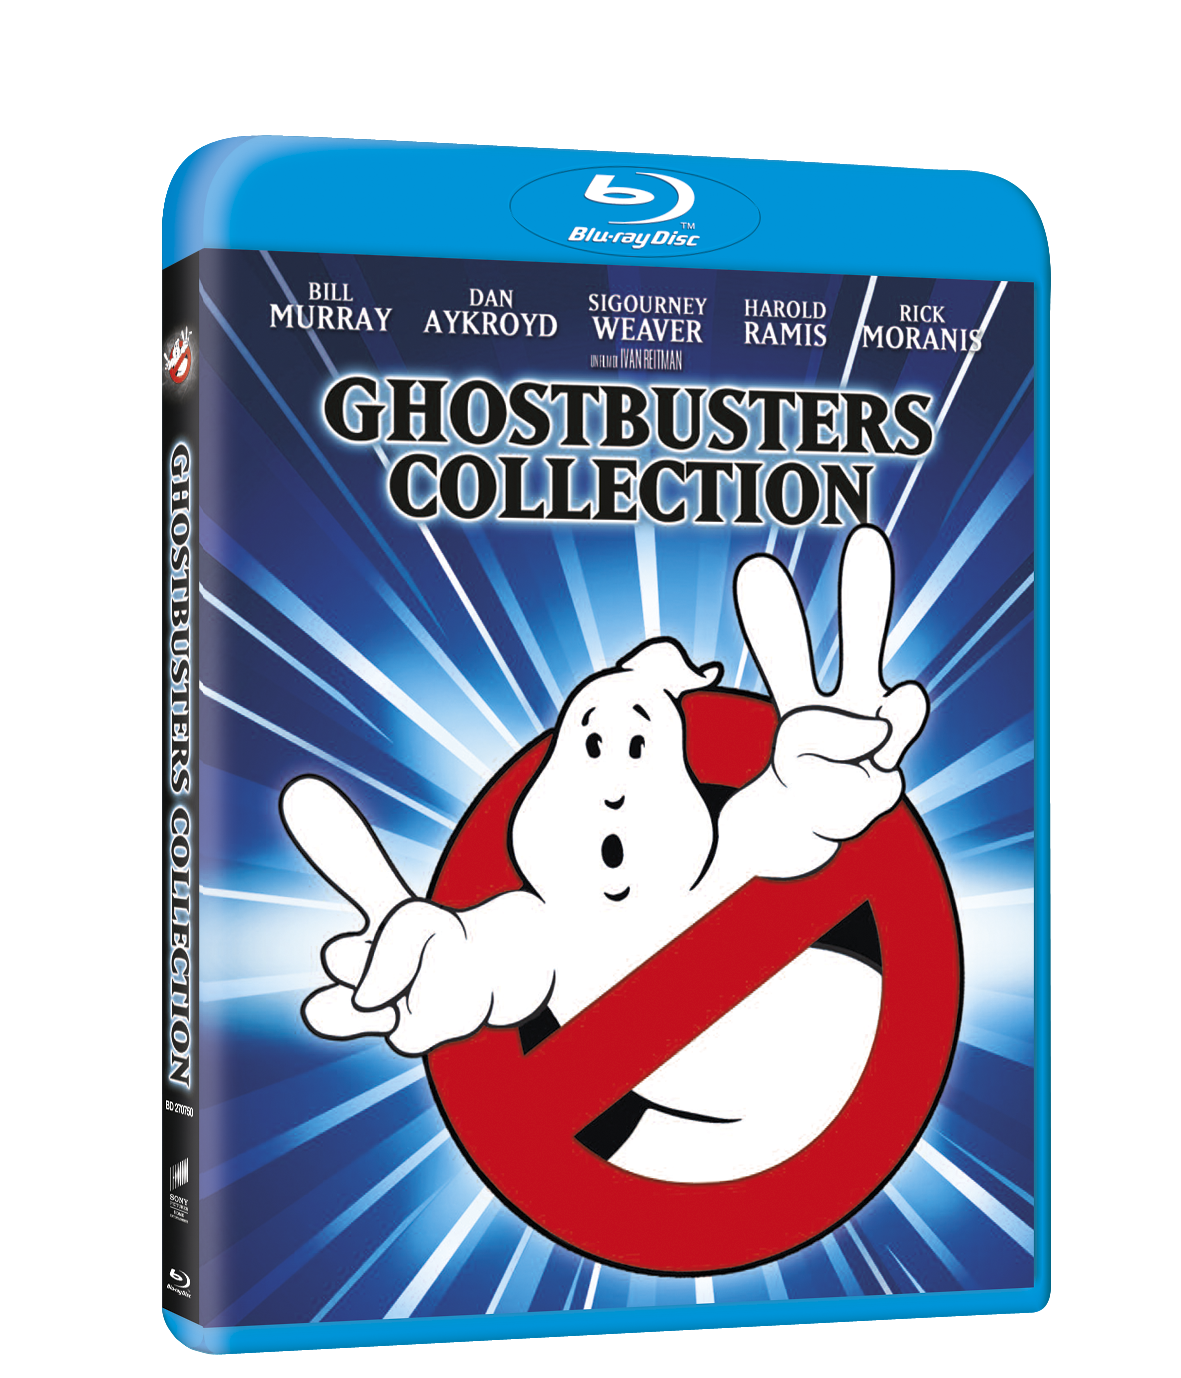 ghostbusters collection blu-ray